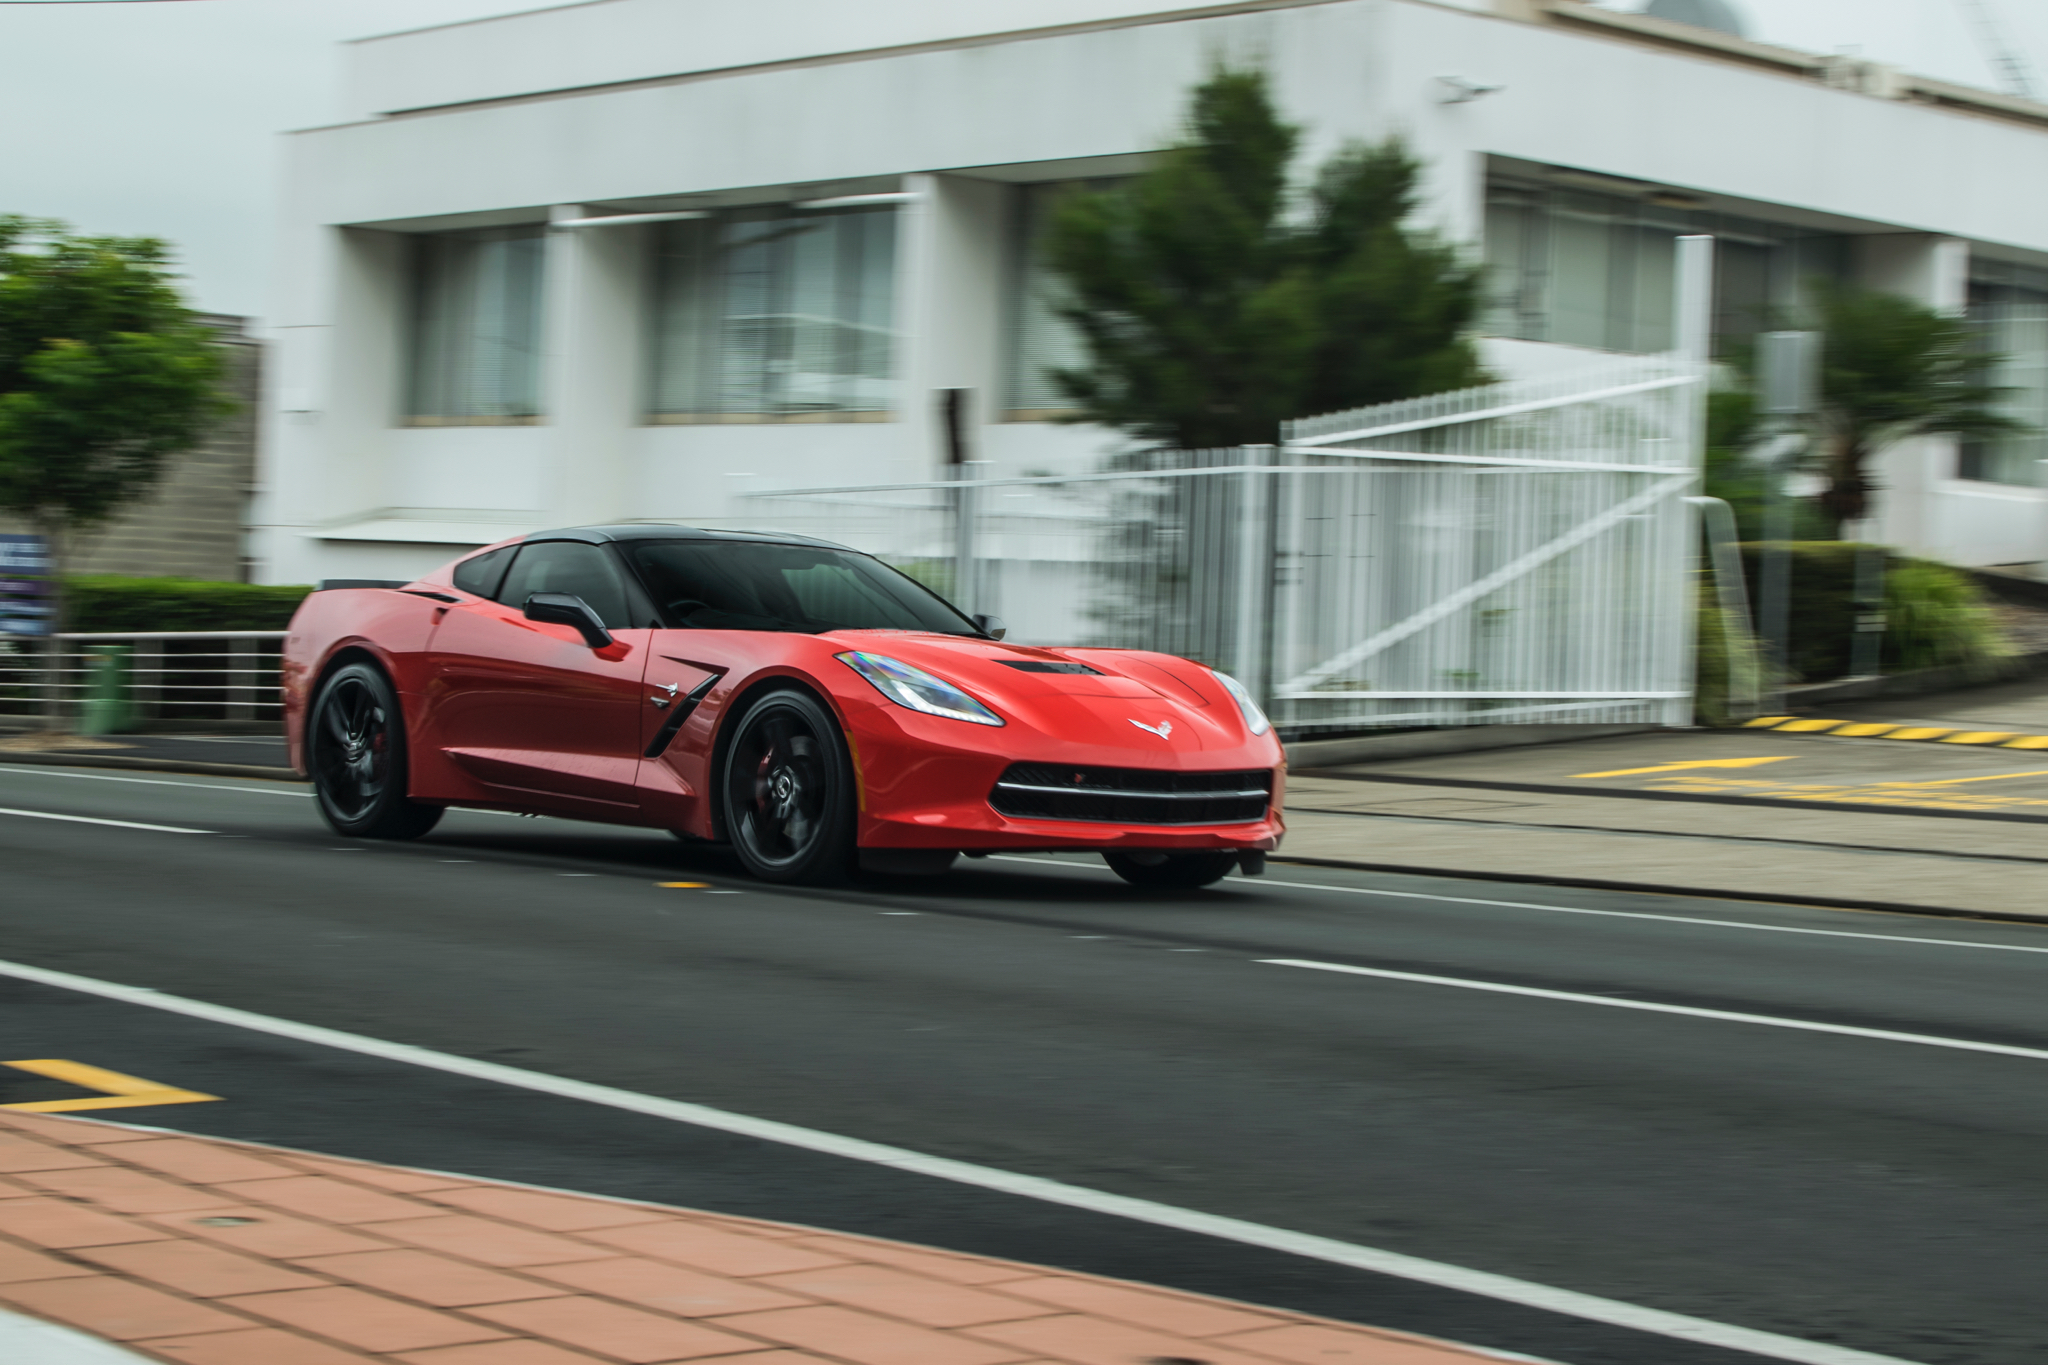 2017 chevrolet corvette c7 stingray review caradvice. Cars Review. Best American Auto & Cars Review